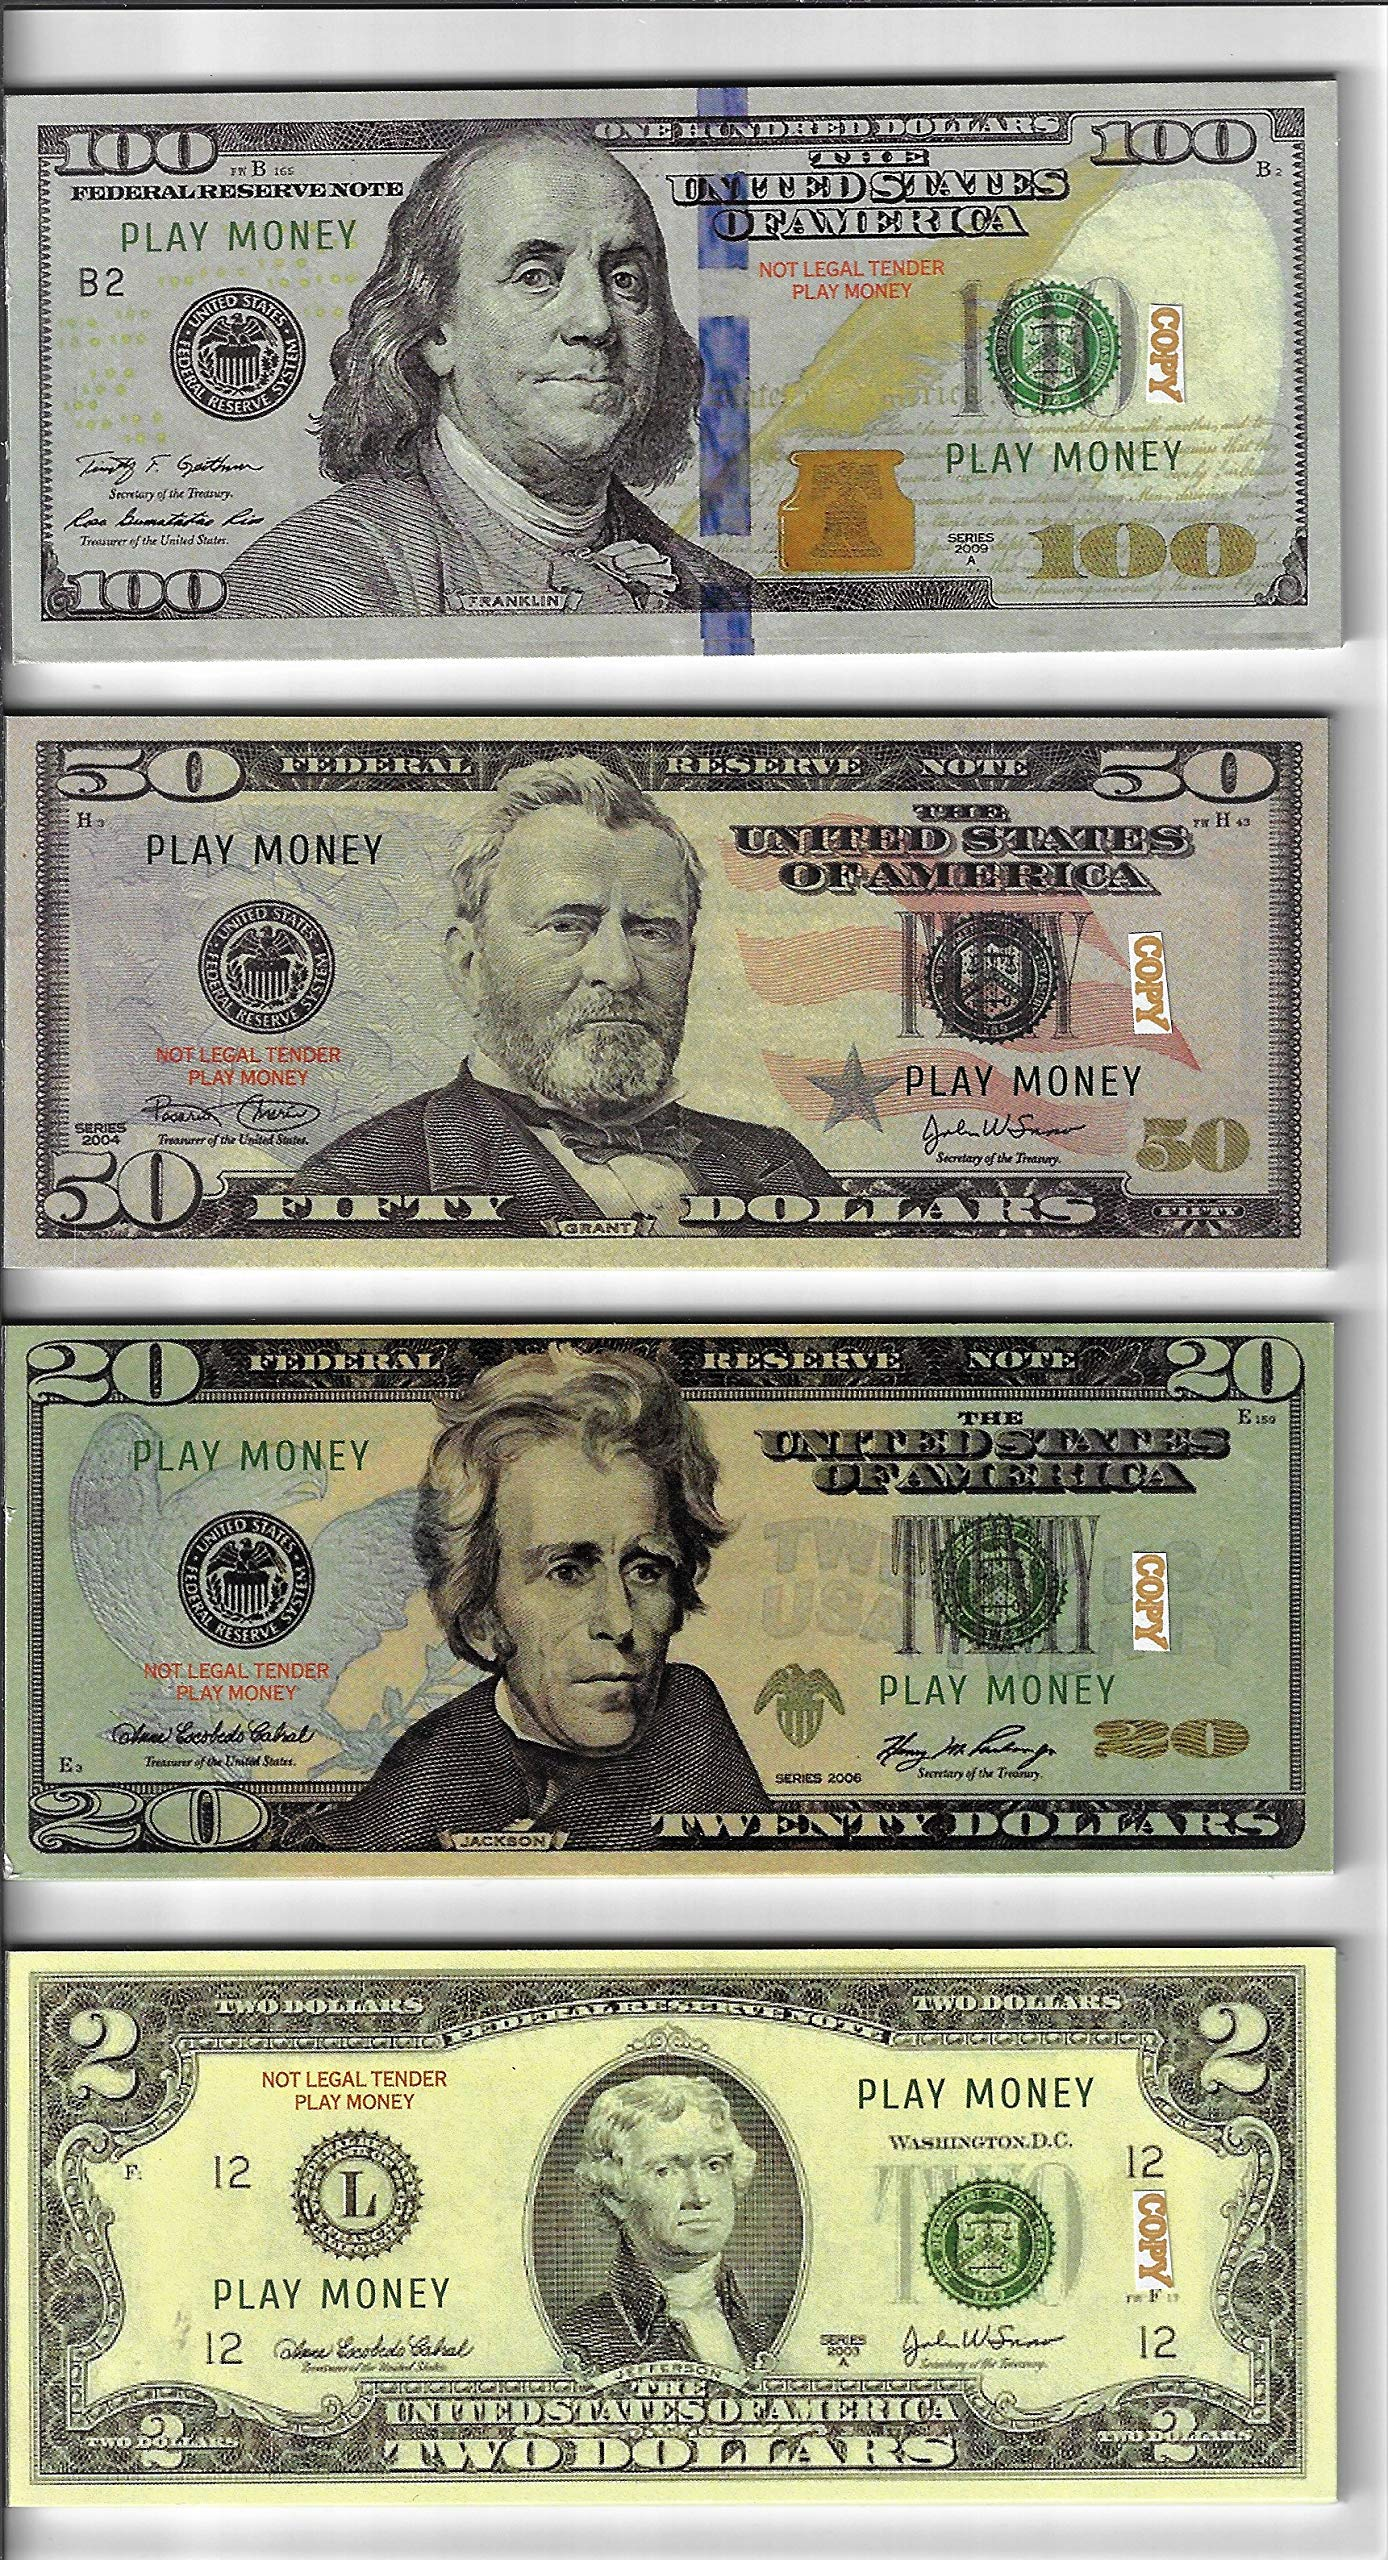 20X $100/50/20/2 BILLS PROP MONEY/FAKE/PLAY. NOT LEGAL TENDER size 2.3x5.5 in. ONE SIDE ONLY